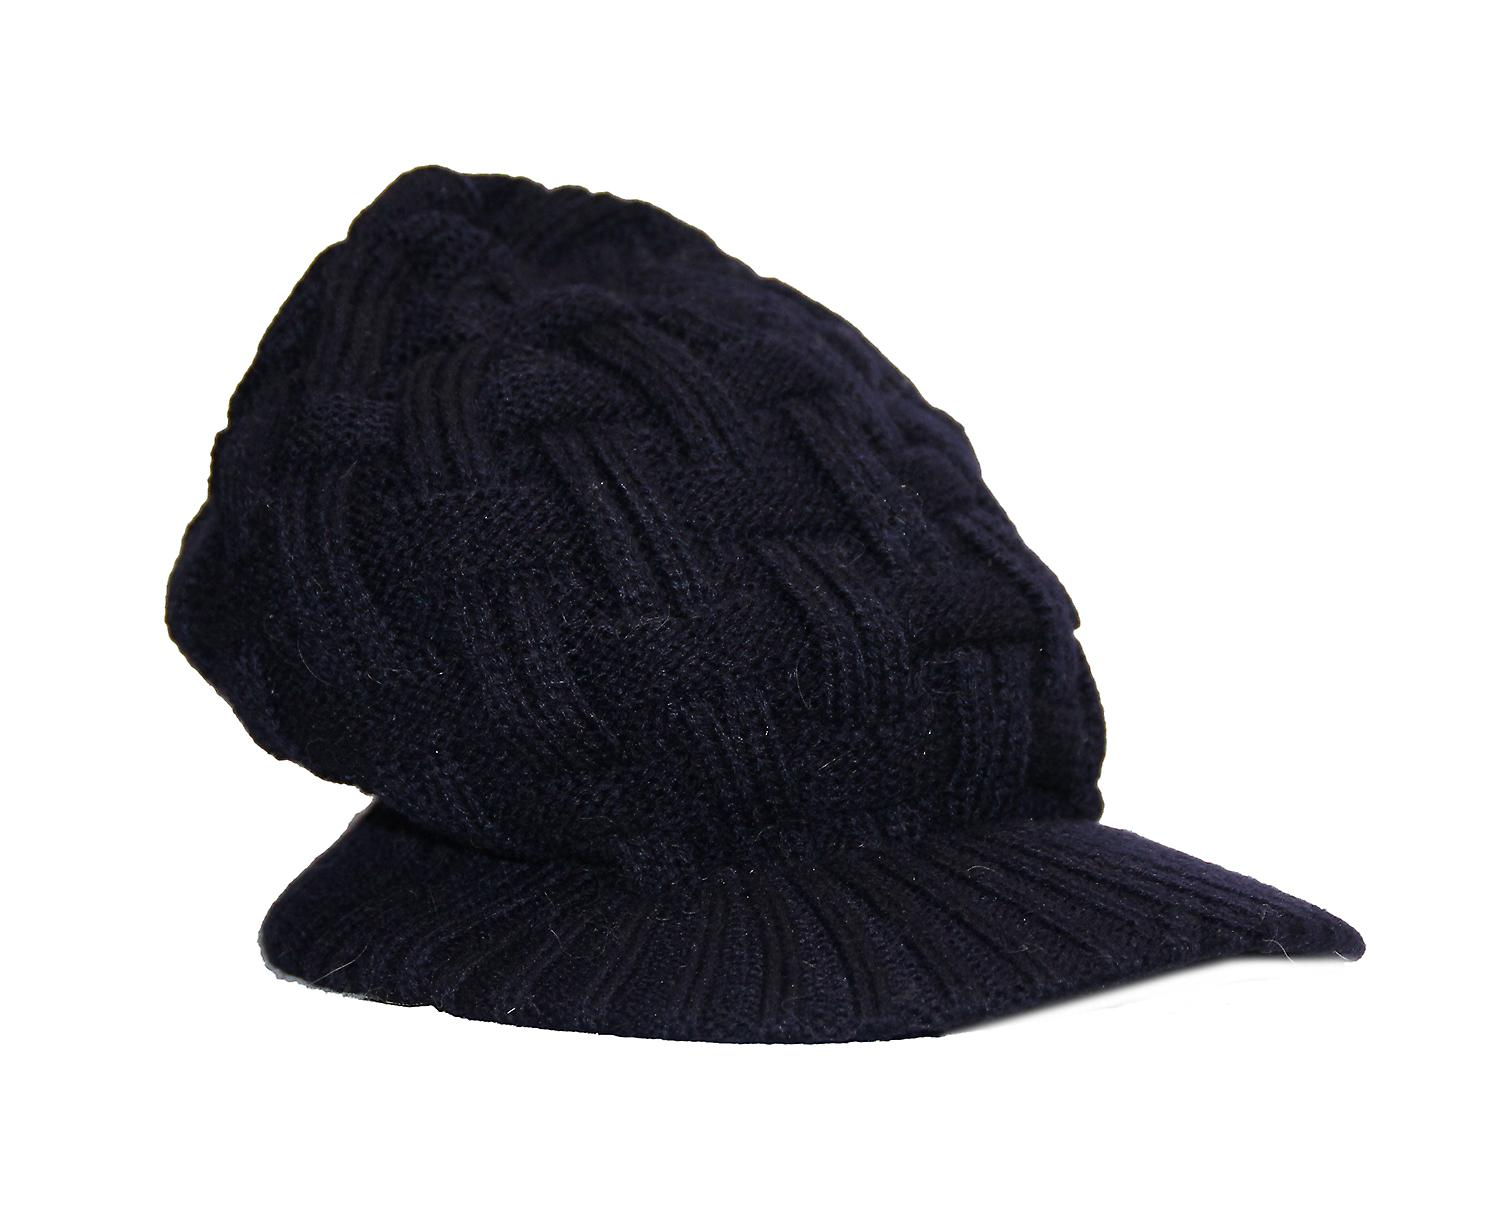 Waooh - Fashion - Bonnet Cap